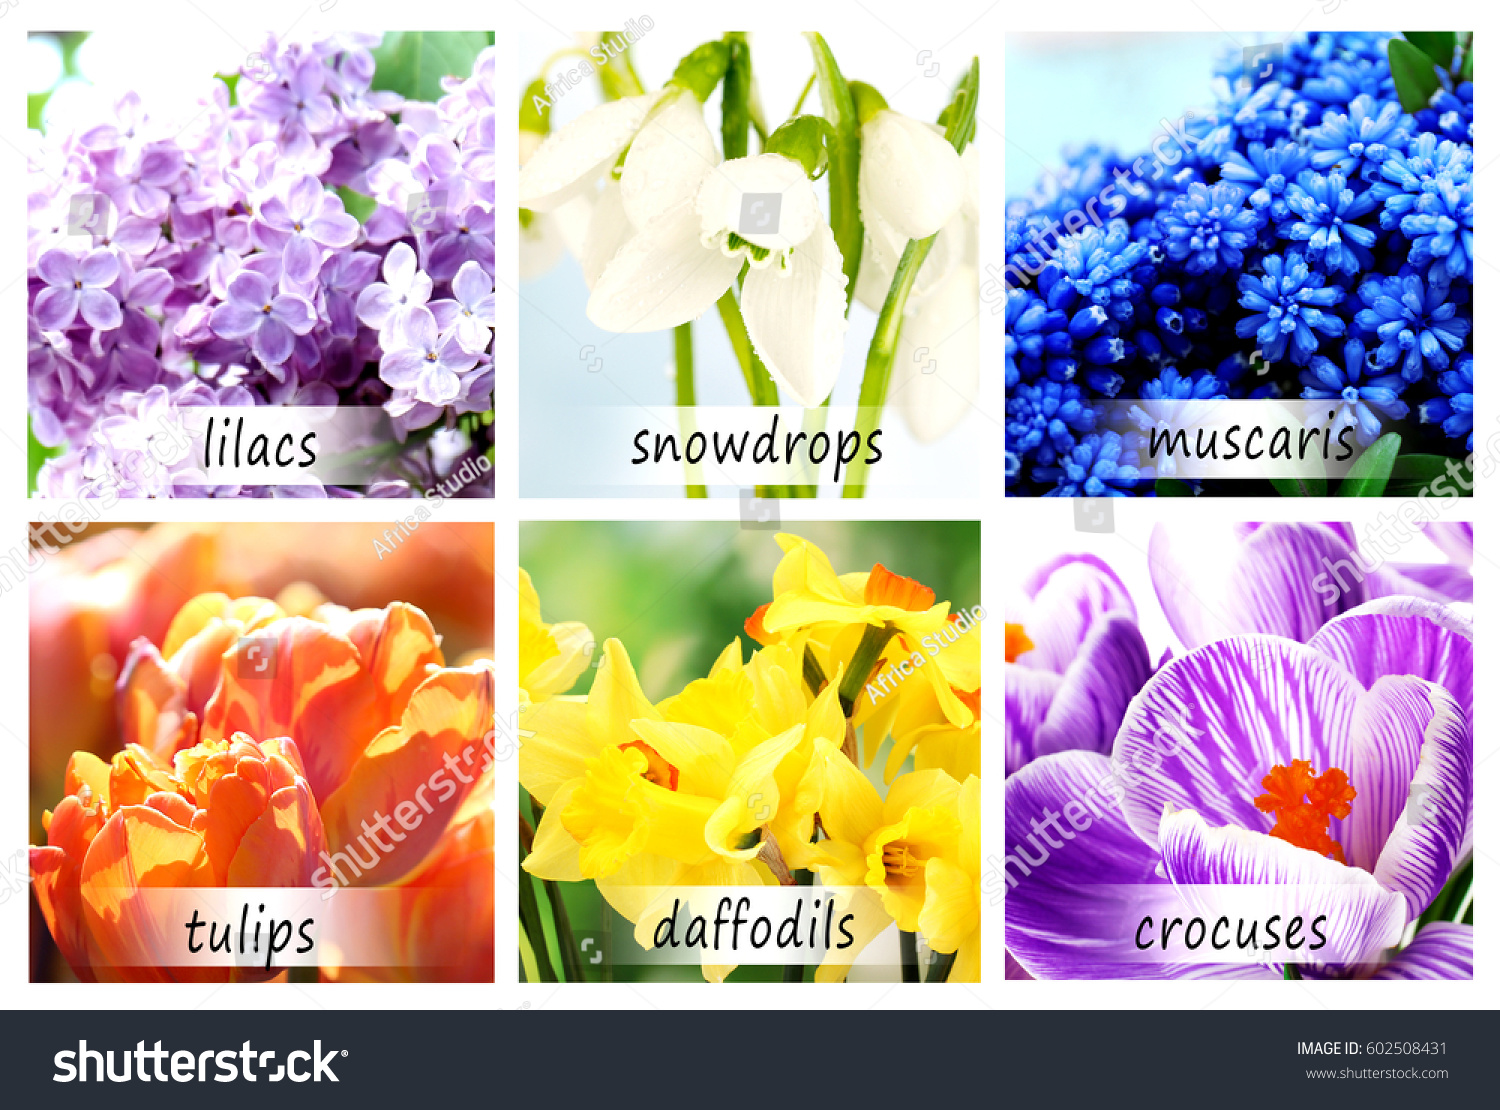 Collage beautiful flowers names stock photo edit now 602508431 collage of beautiful flowers with names izmirmasajfo